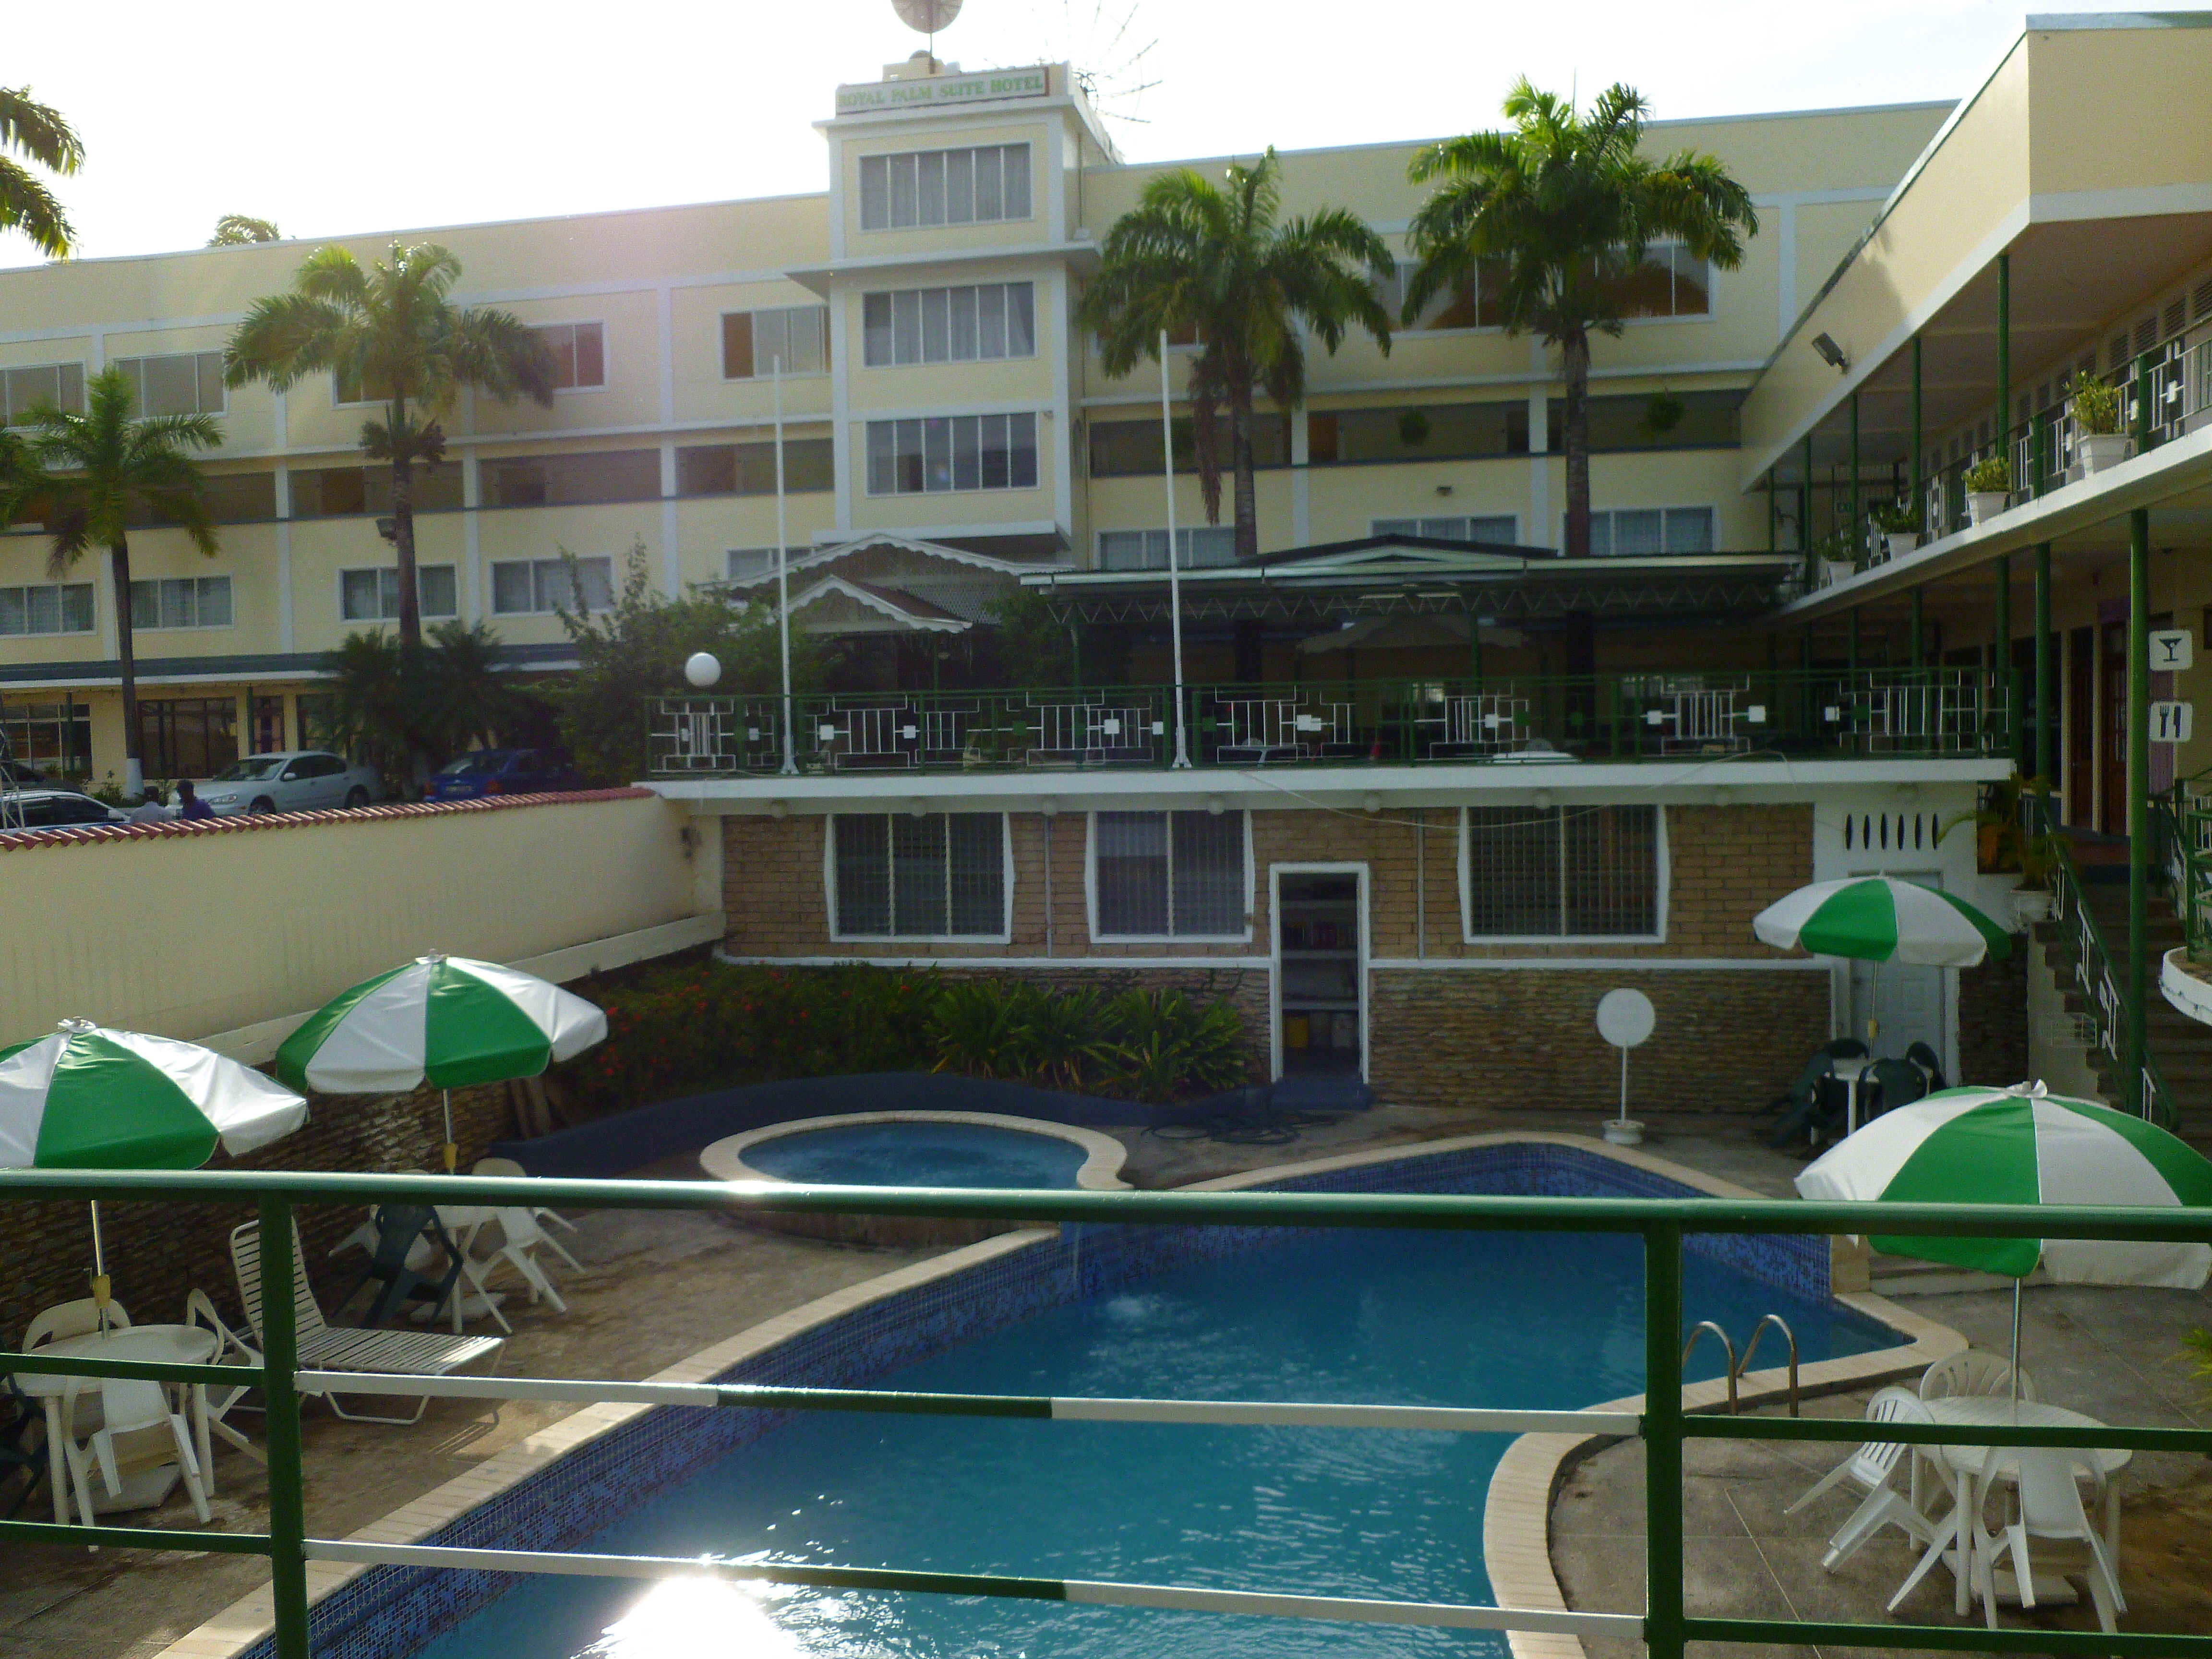 The Royal Palm Hotel